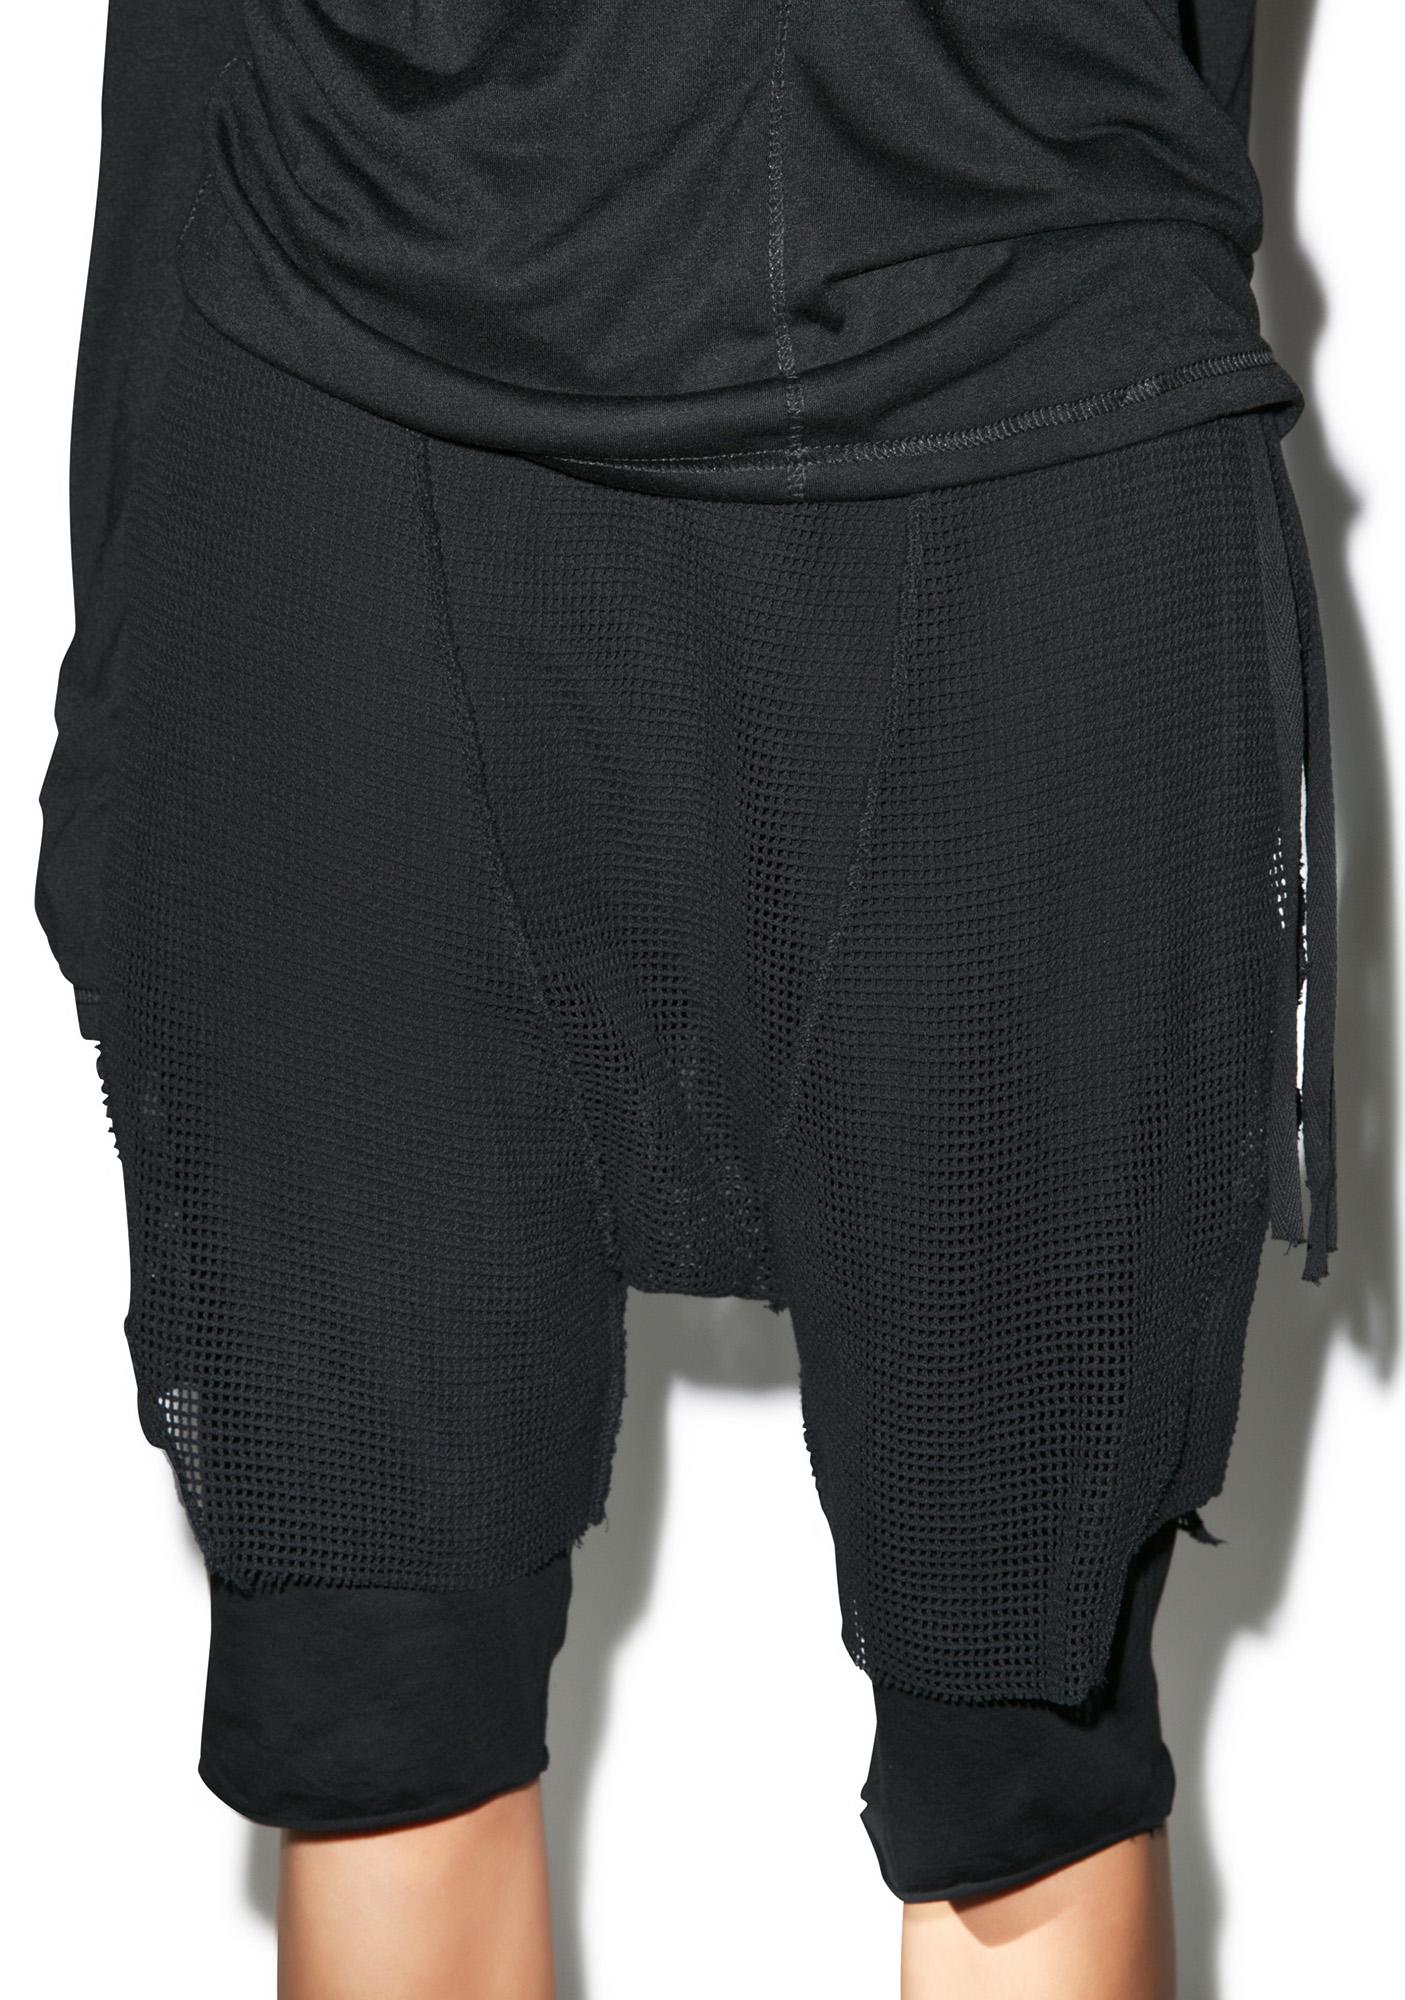 Lip Service Burner Knit Shorts